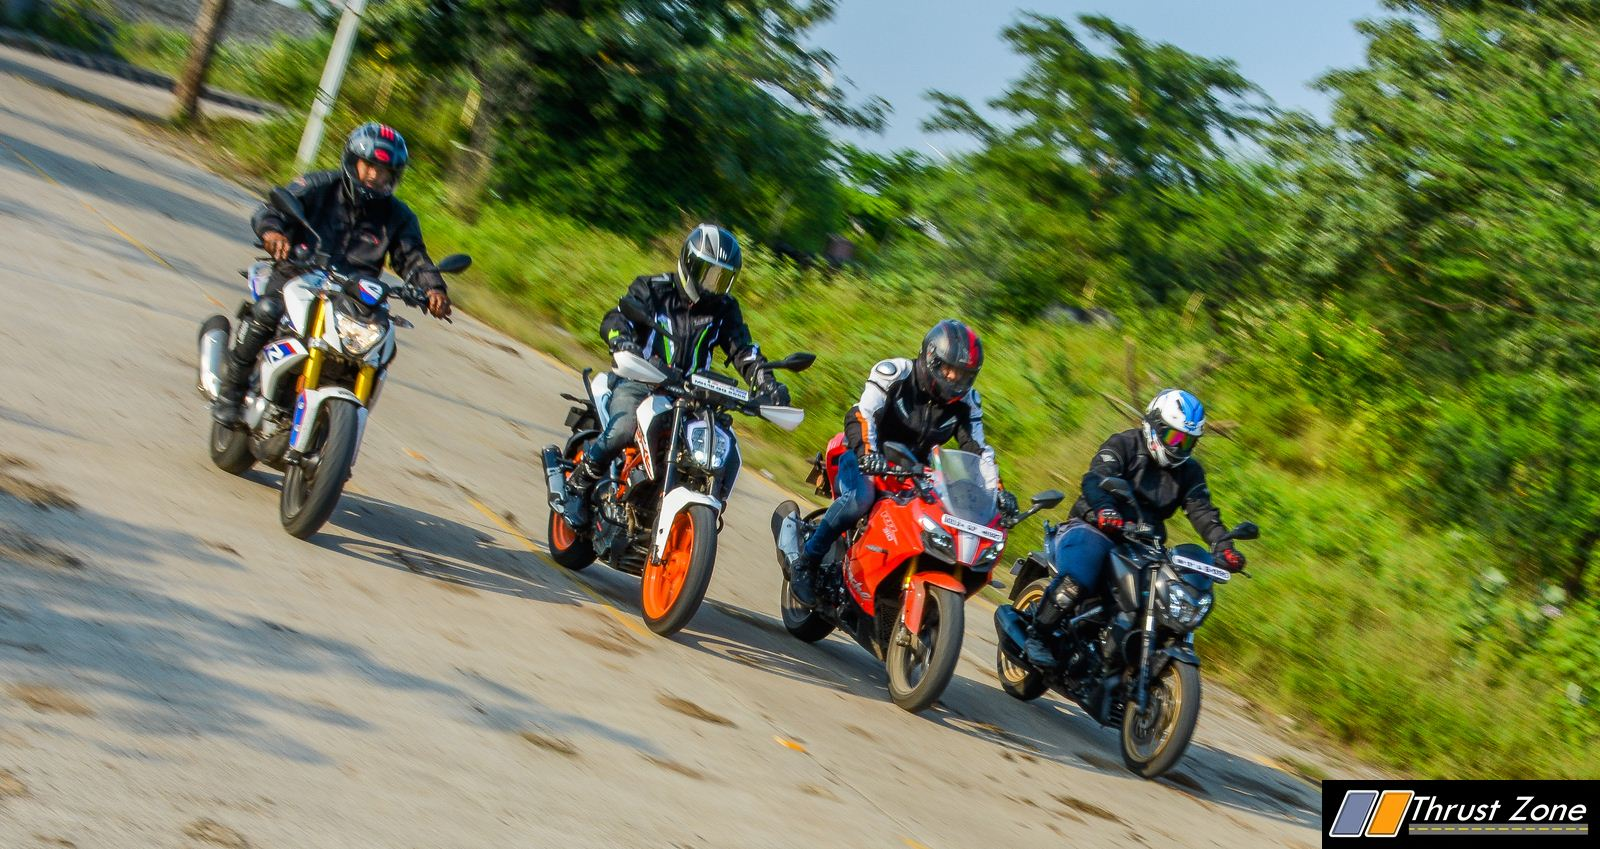 BMW G310R vs Duke 390 vs Dominar 400 vs Apache RR310 Review-28